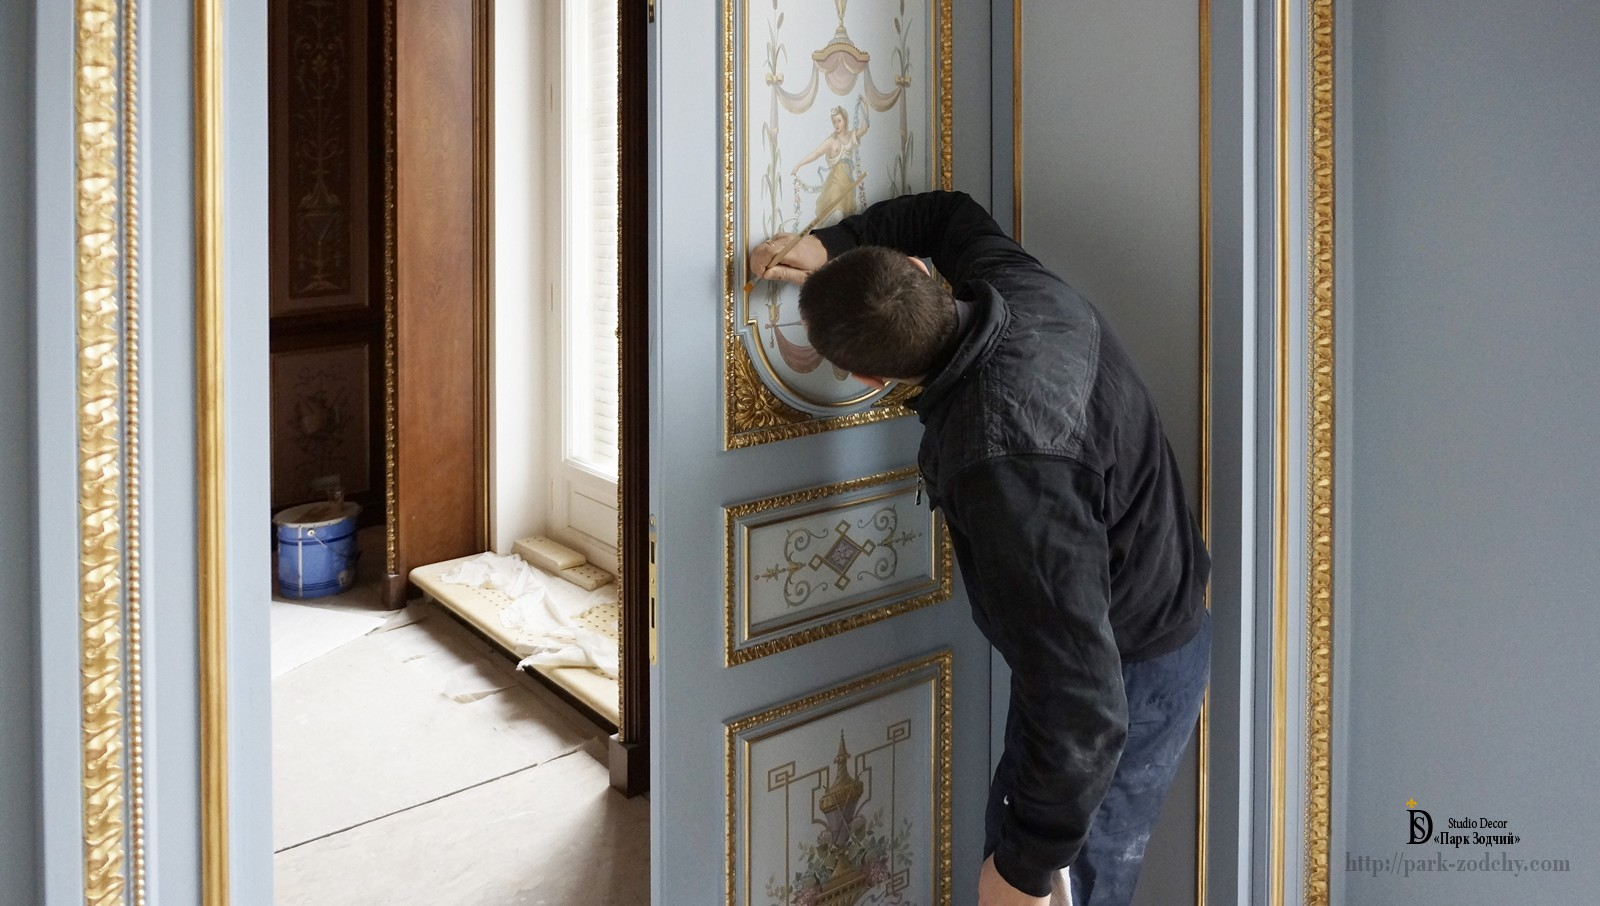 Lapping gilt doors